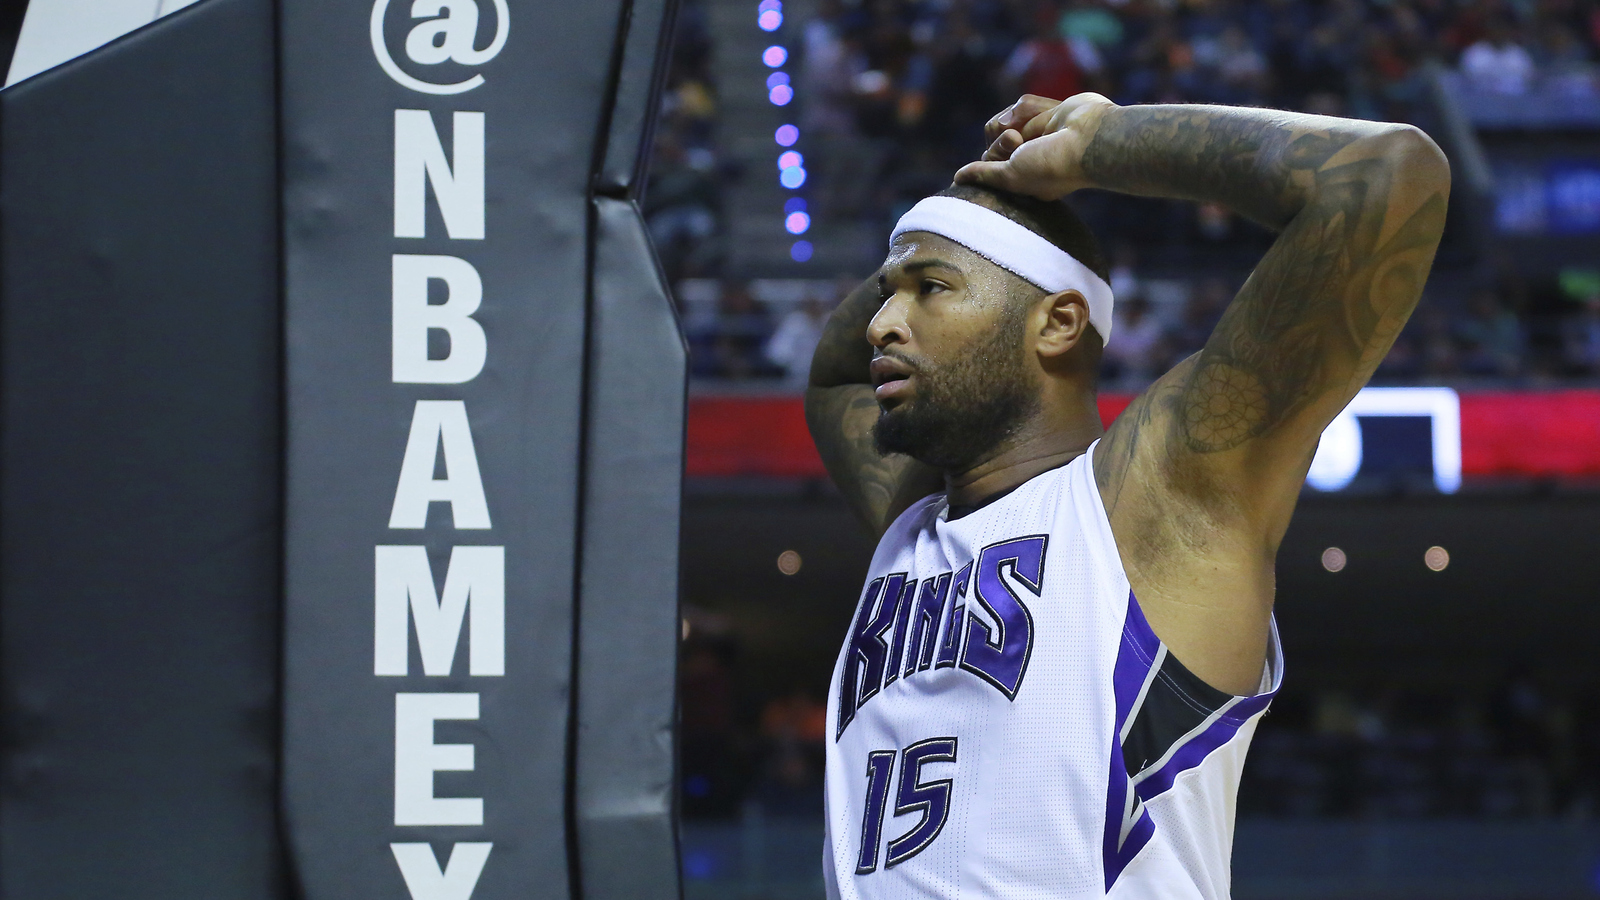 Cousins' manager tossed for slap at Terry, Kings top Rockets